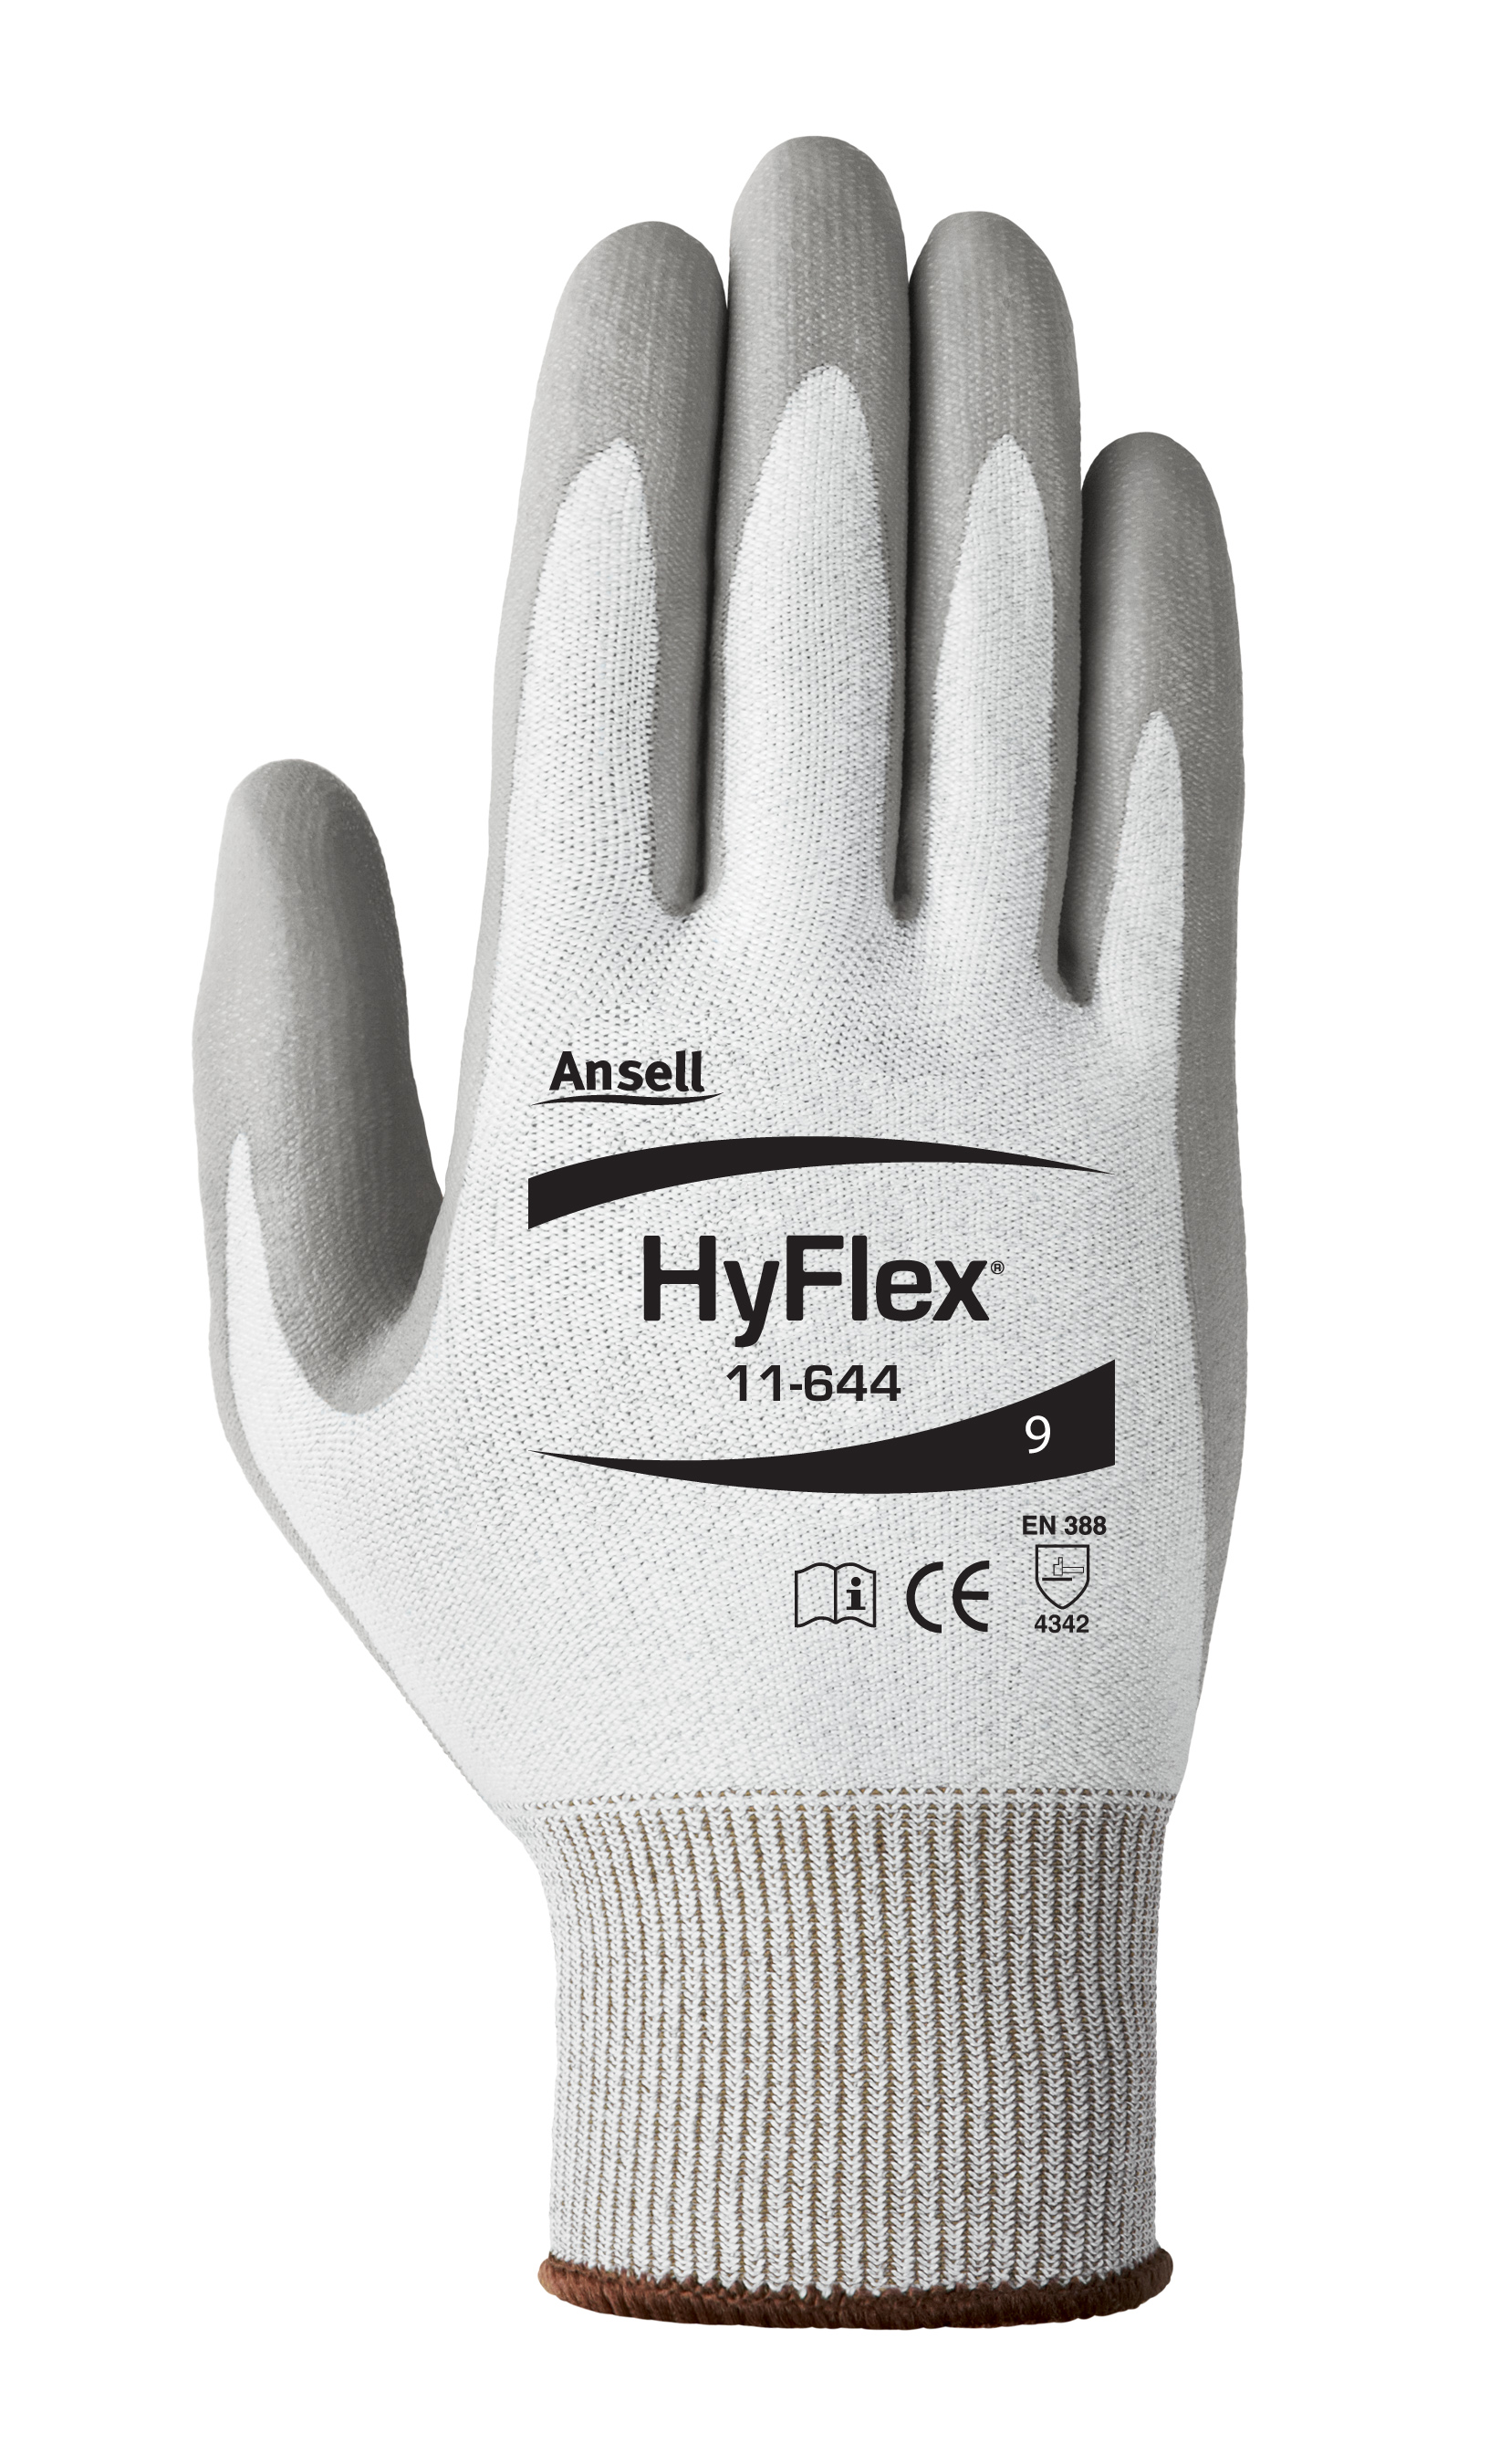 ansell glove resistance guide